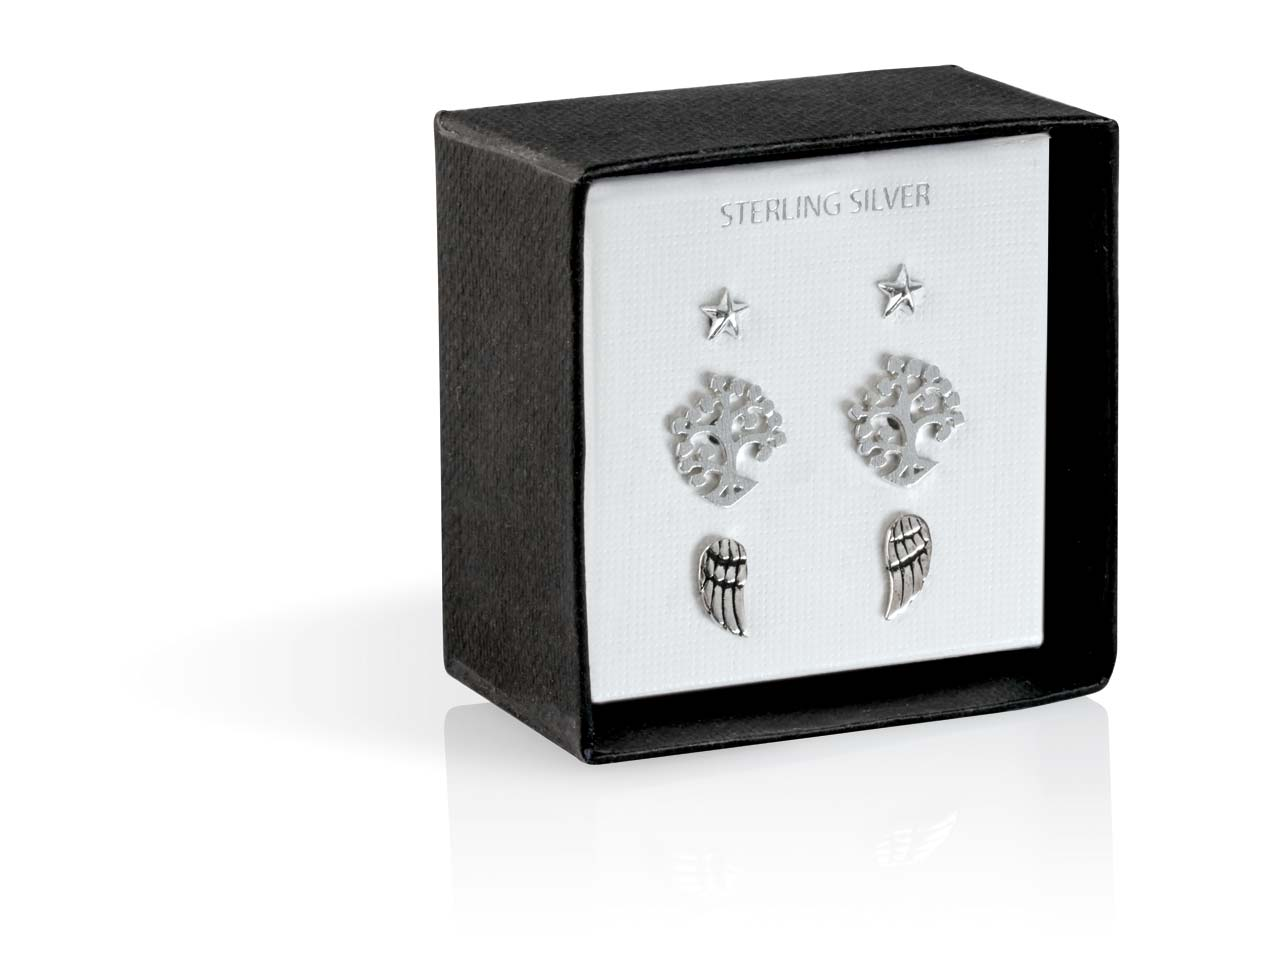 47d9616e8 Sterling Silver Stud Earrings Set, 3 Designs With Gift Box Black ...